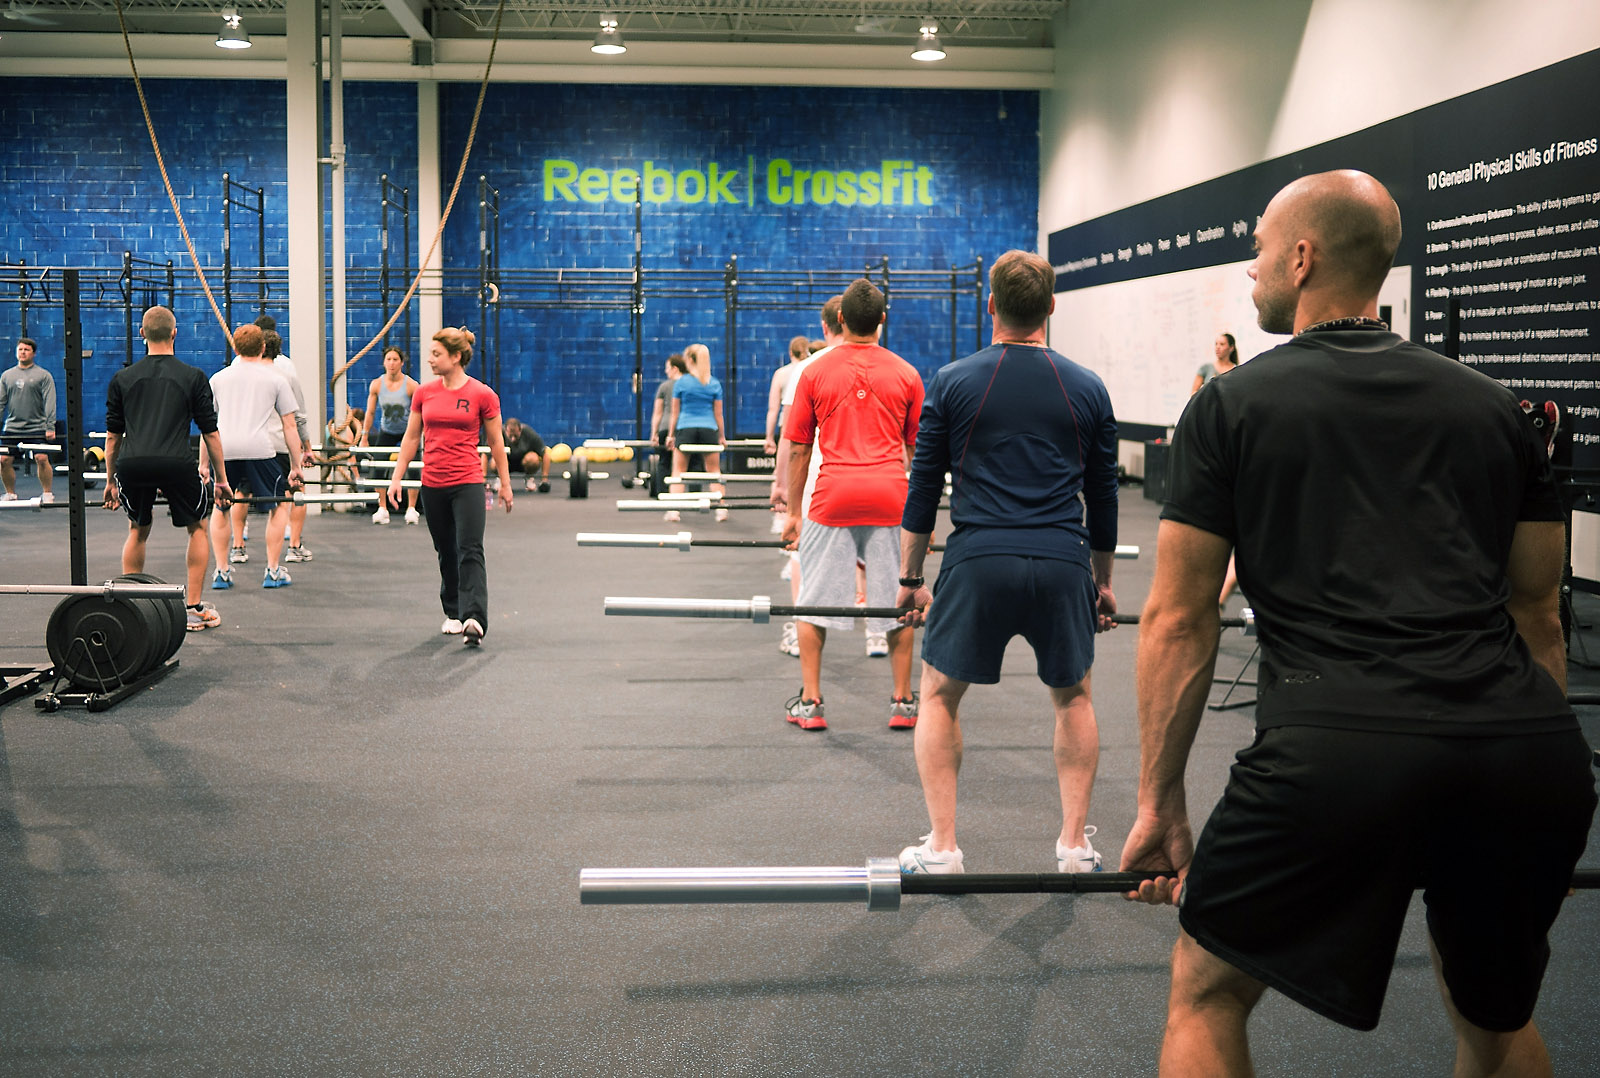 reebok crossfit gym